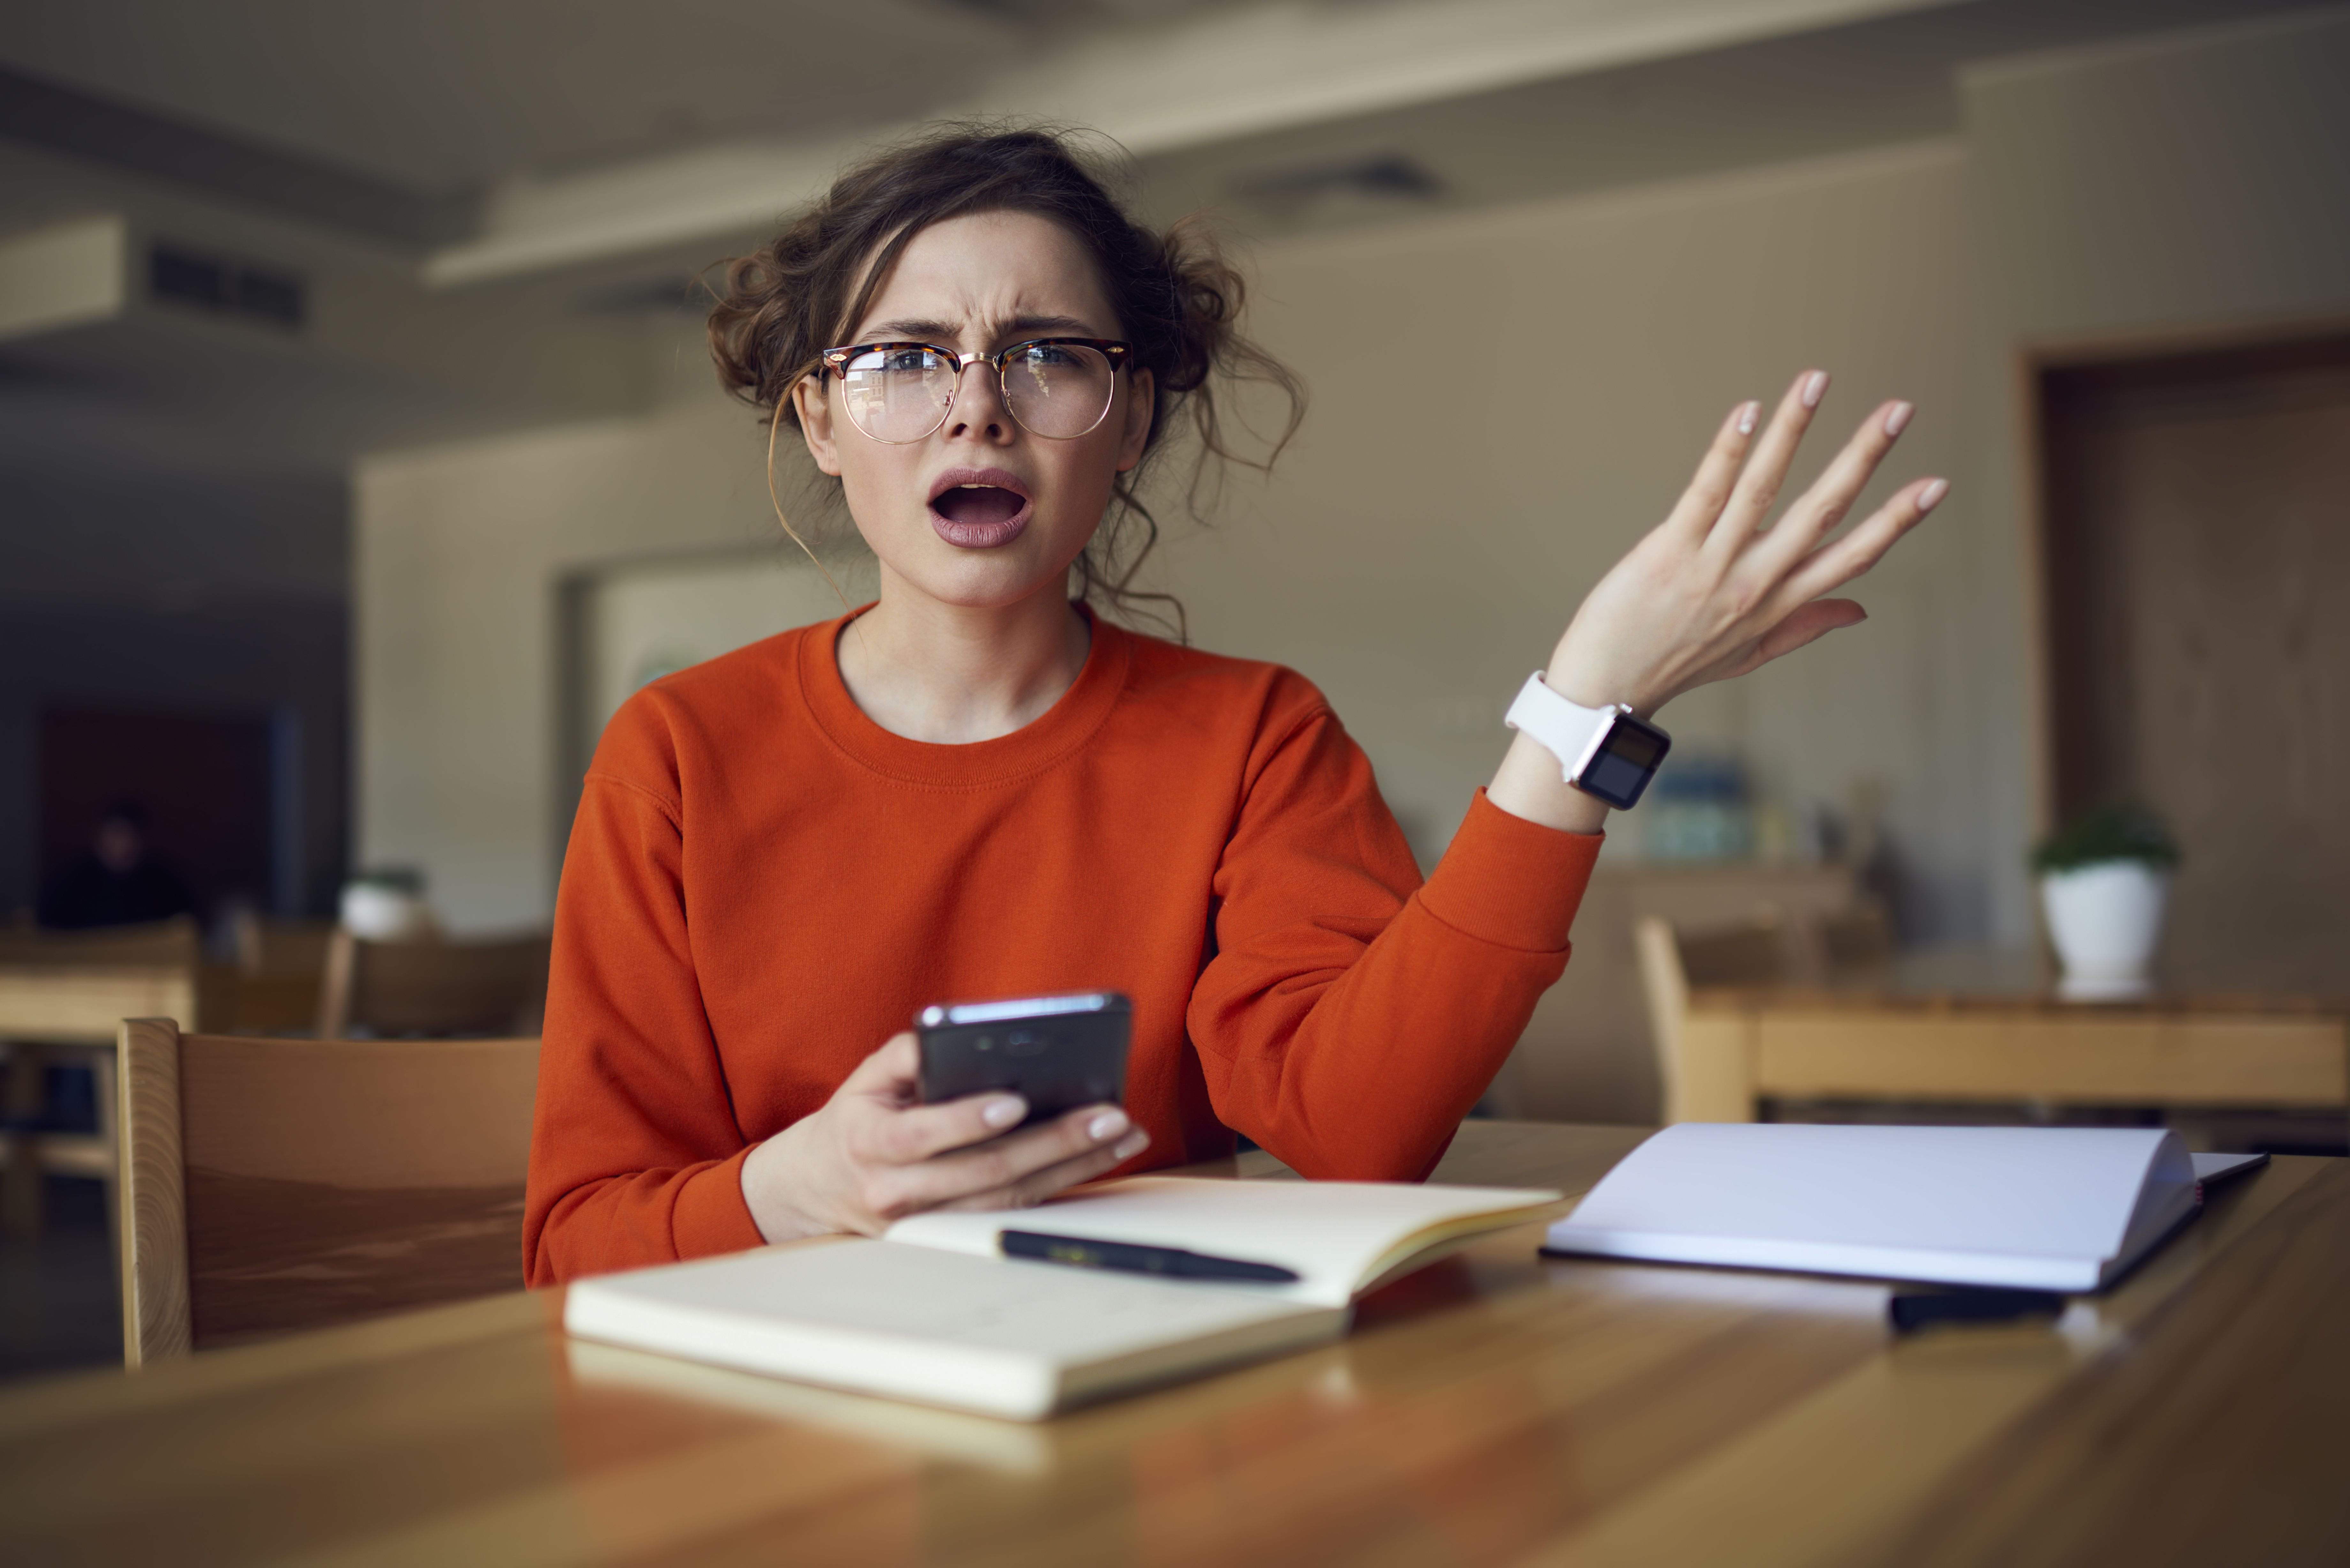 A woman looks shocked while going through her phone.   Source: Shutterstock